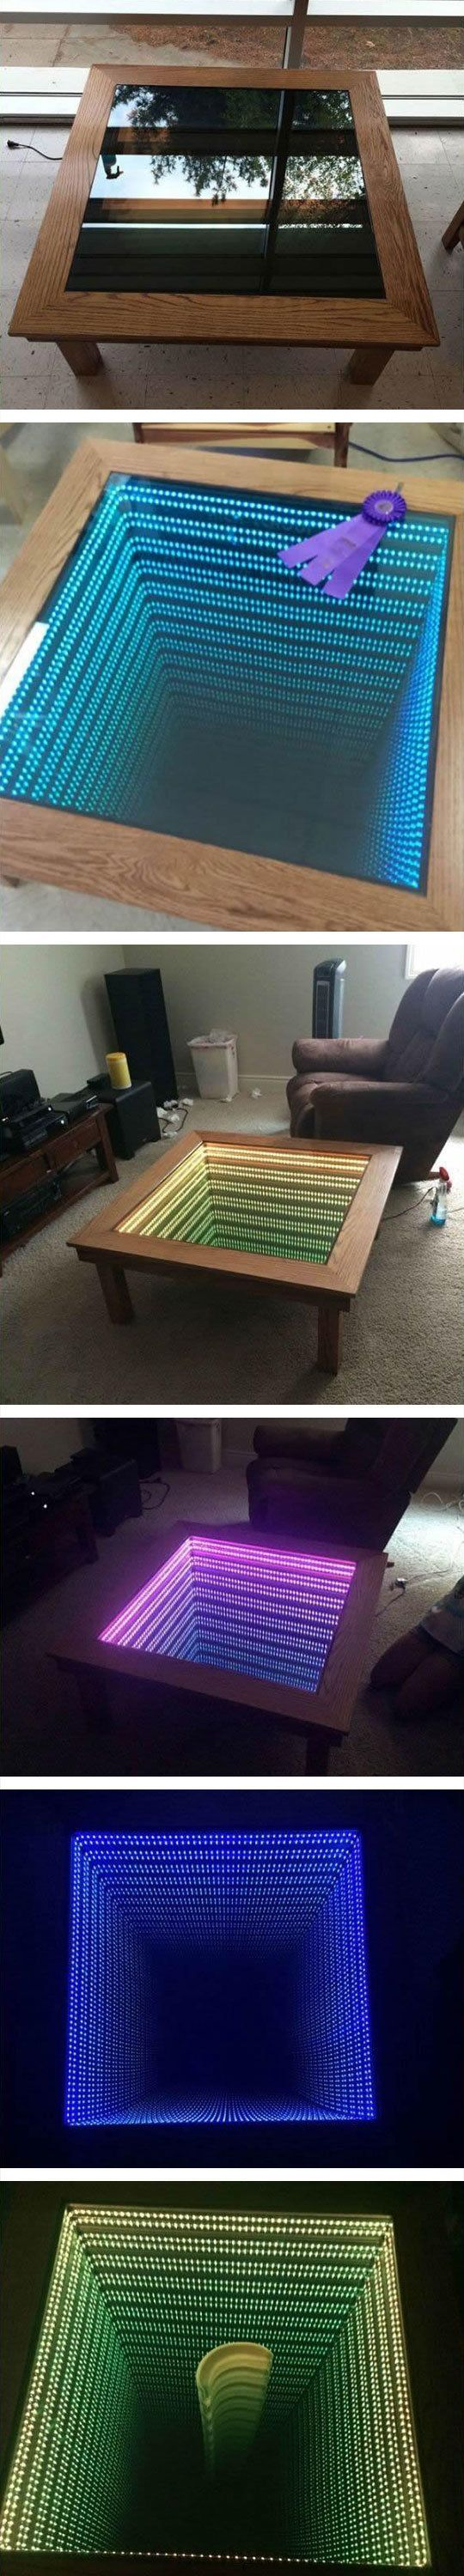 How To Build An Infinity Table. How To Build An Infinity Table   Man Cave Ideas   Pinterest